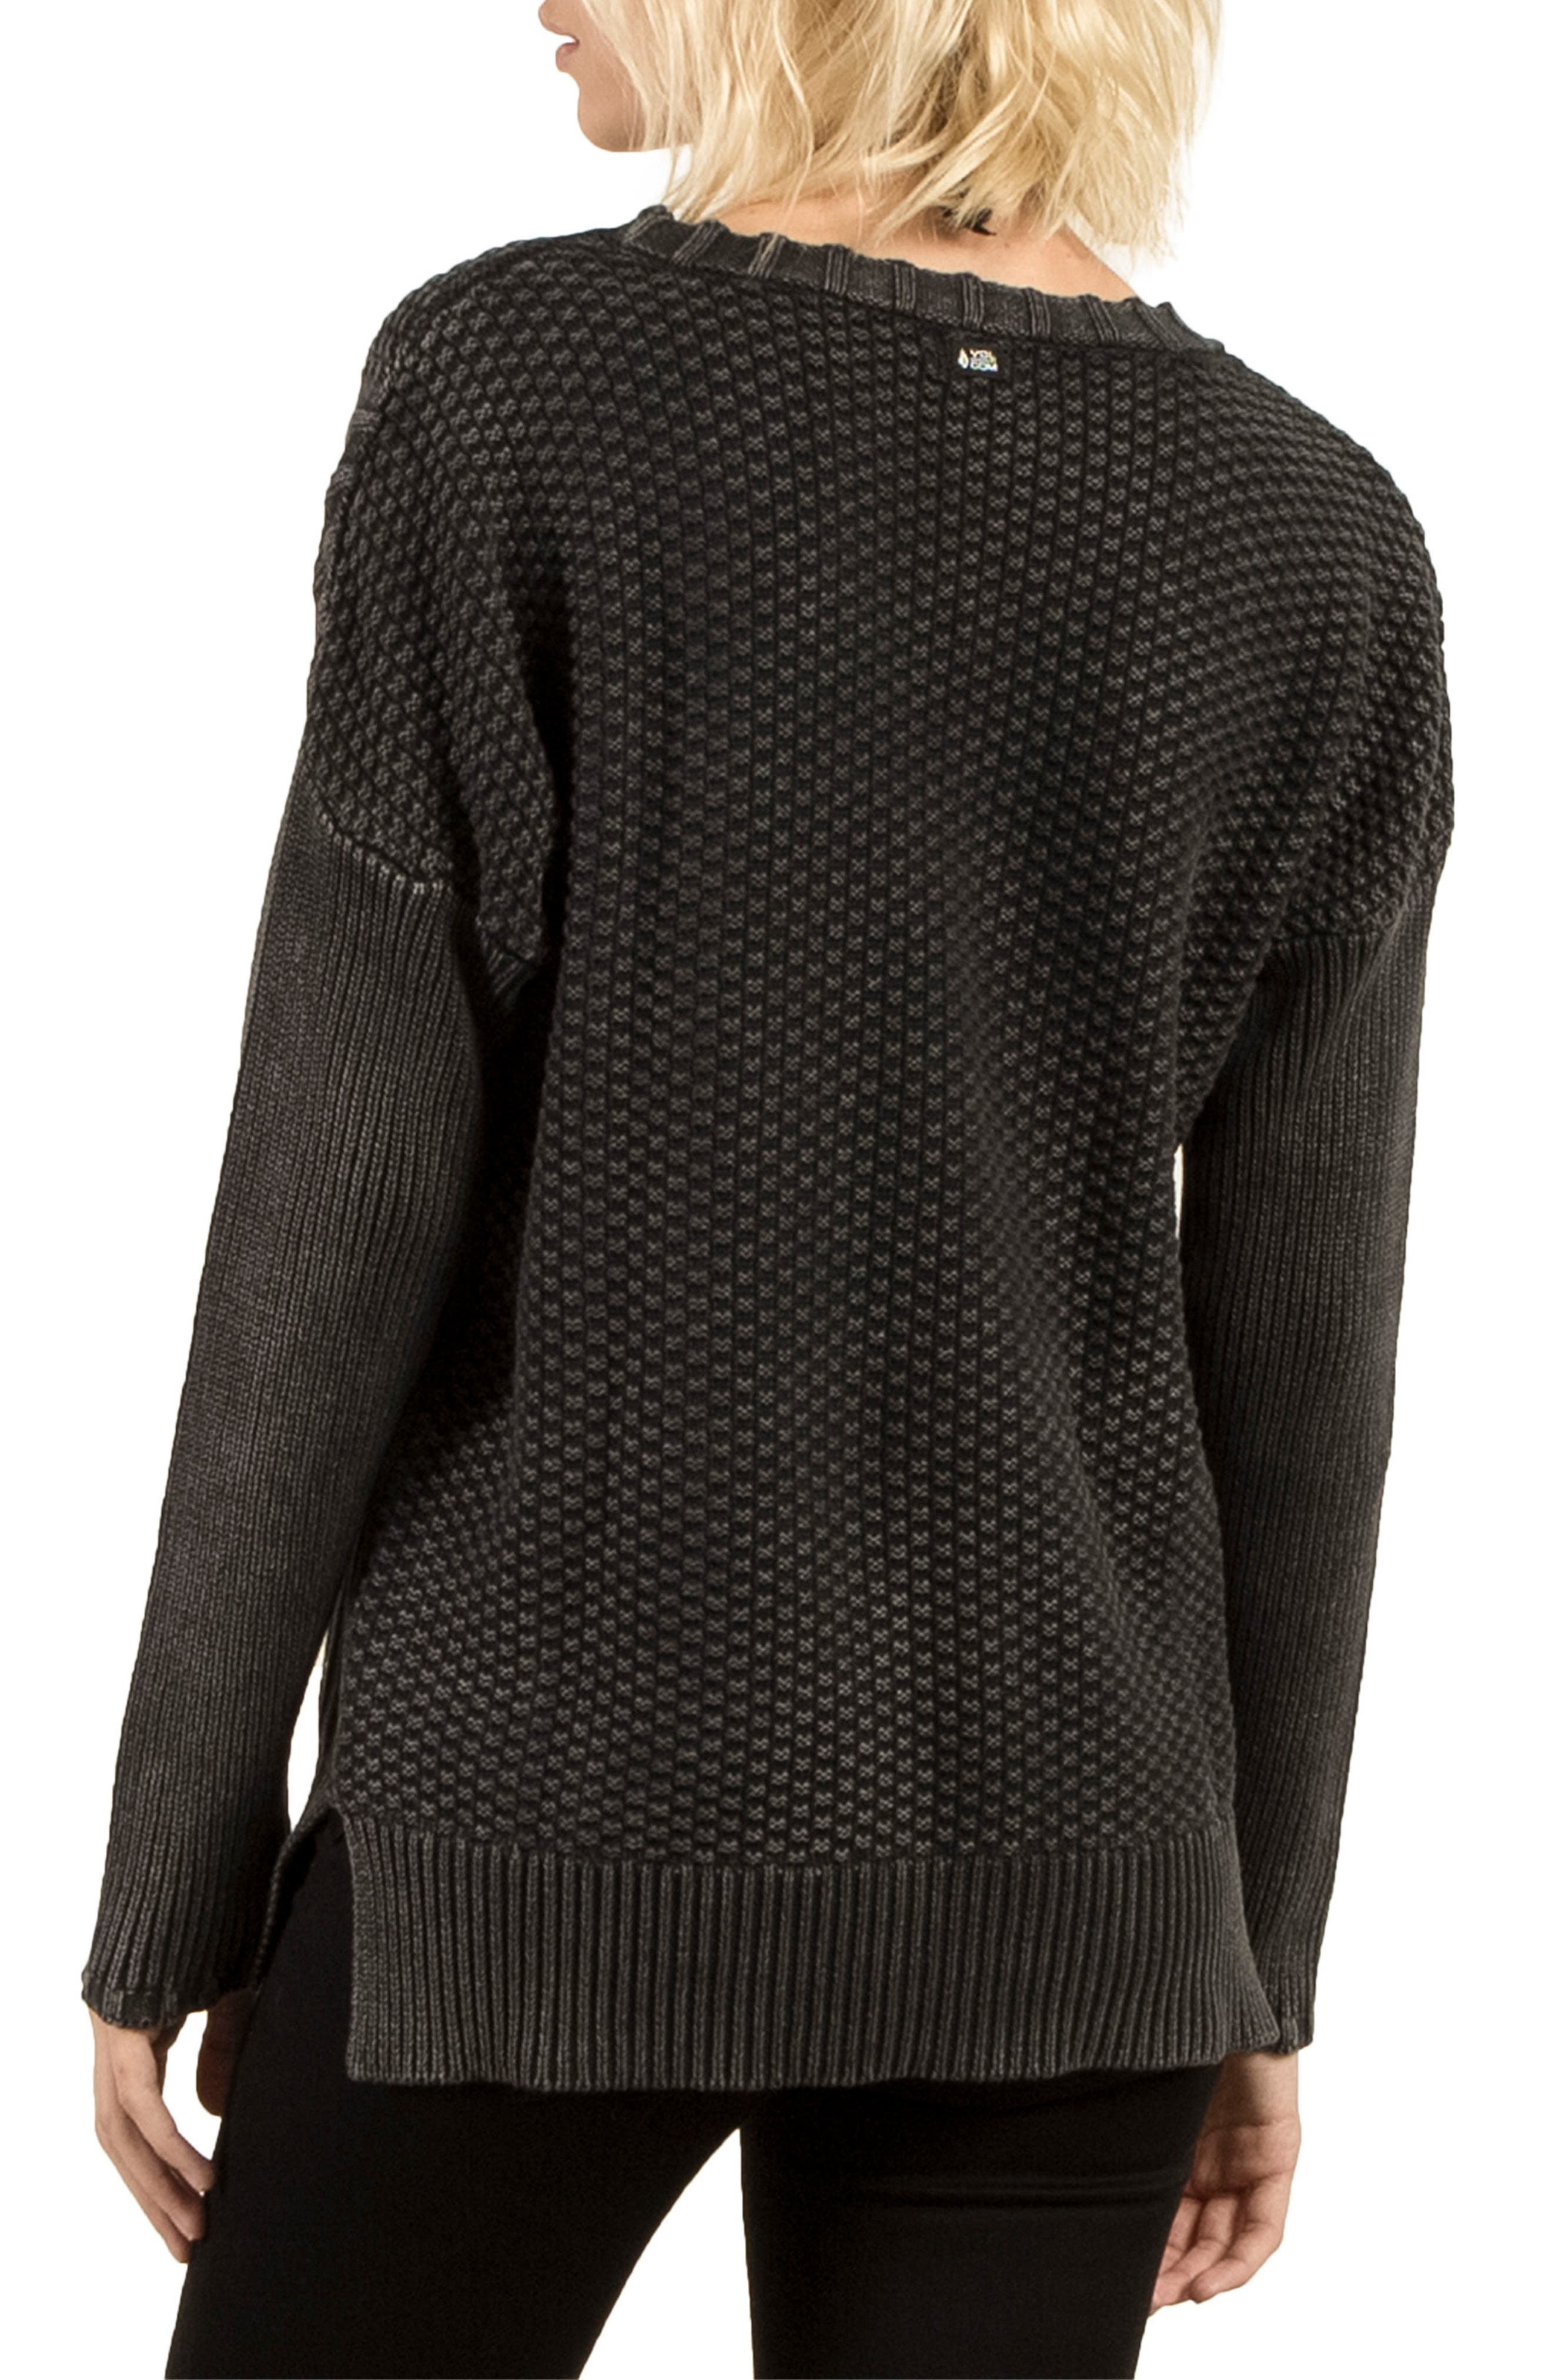 Twisted Mr Cotton Sweater,                             Alternate thumbnail 2, color,                             001